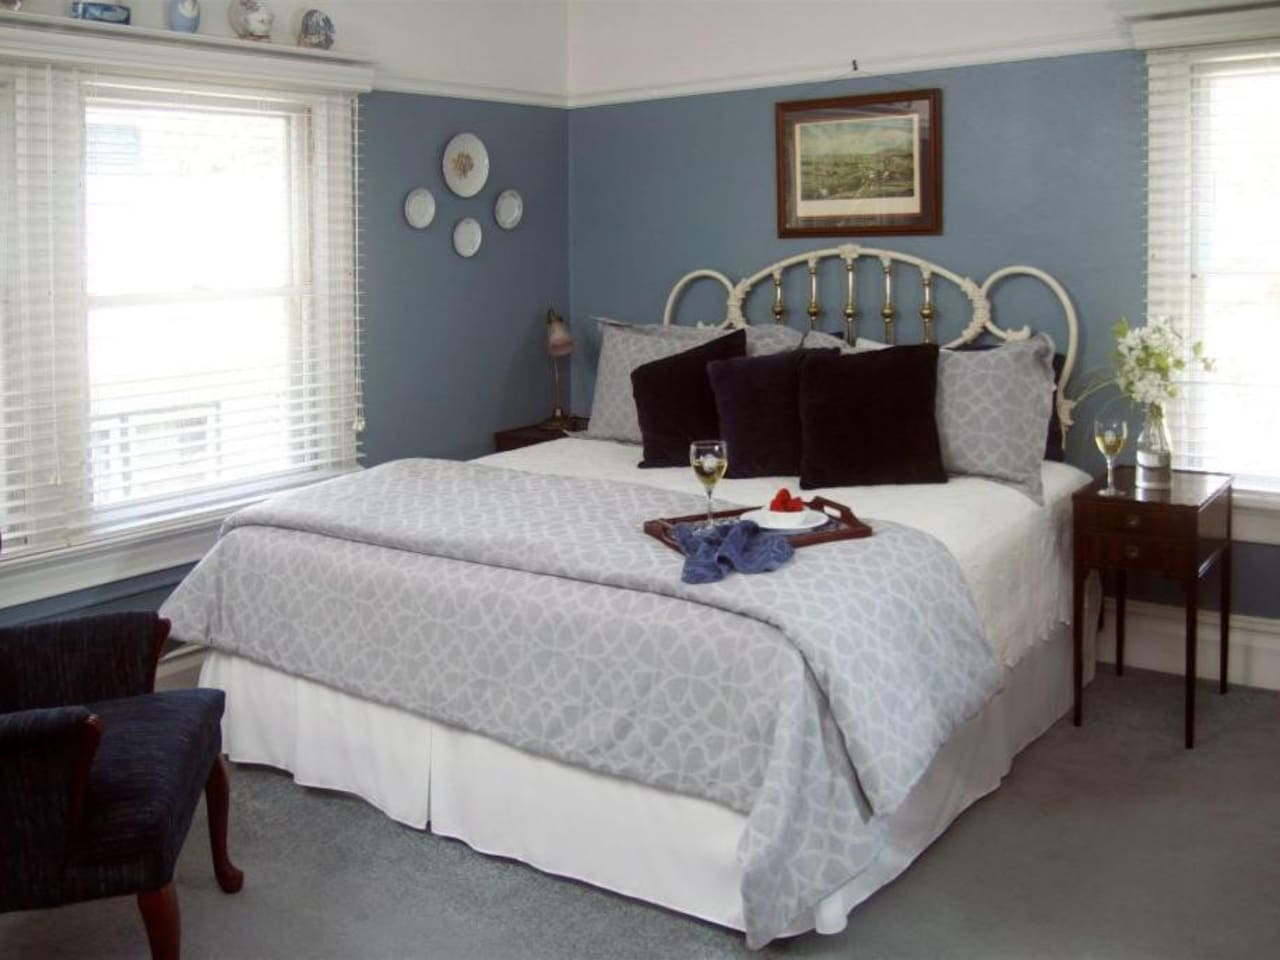 Done in Wedgwood Blue, this bright British inspired room over looks the gardens and has an antique, gentleman's armoir plus an in-room dressing table with sink.